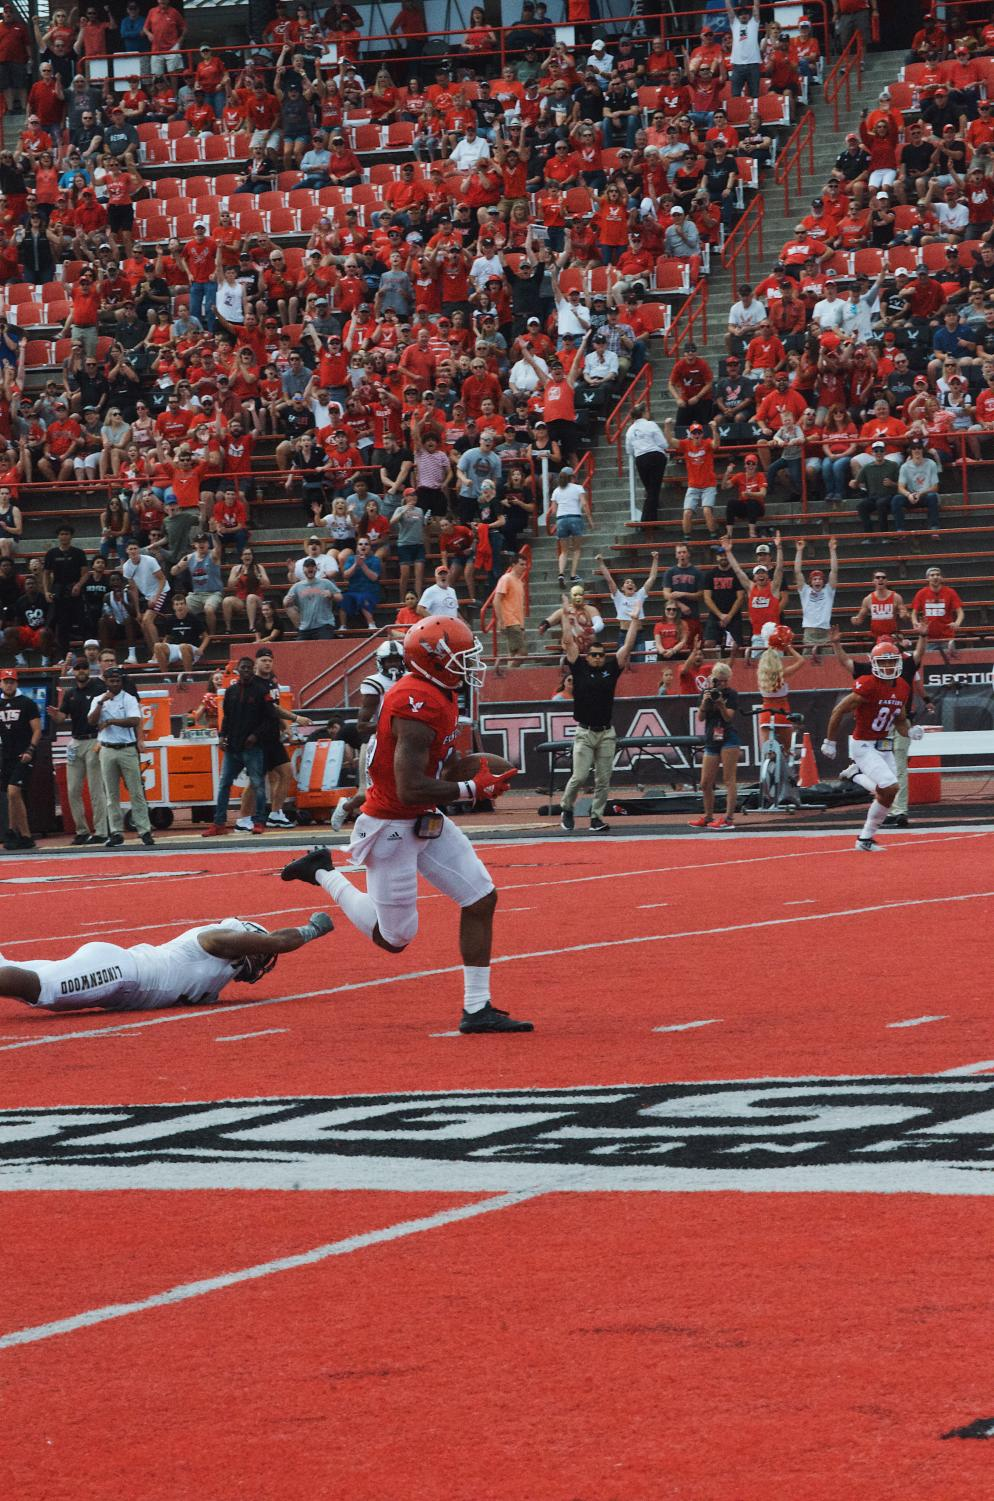 Senior wide receiver Dre Dorton breaks away for a 78-yard touchdown on EWU's first play from scrimmage Saturday. Dorton broke Cooper Kupp's school record for receiving yards in a game with 289.